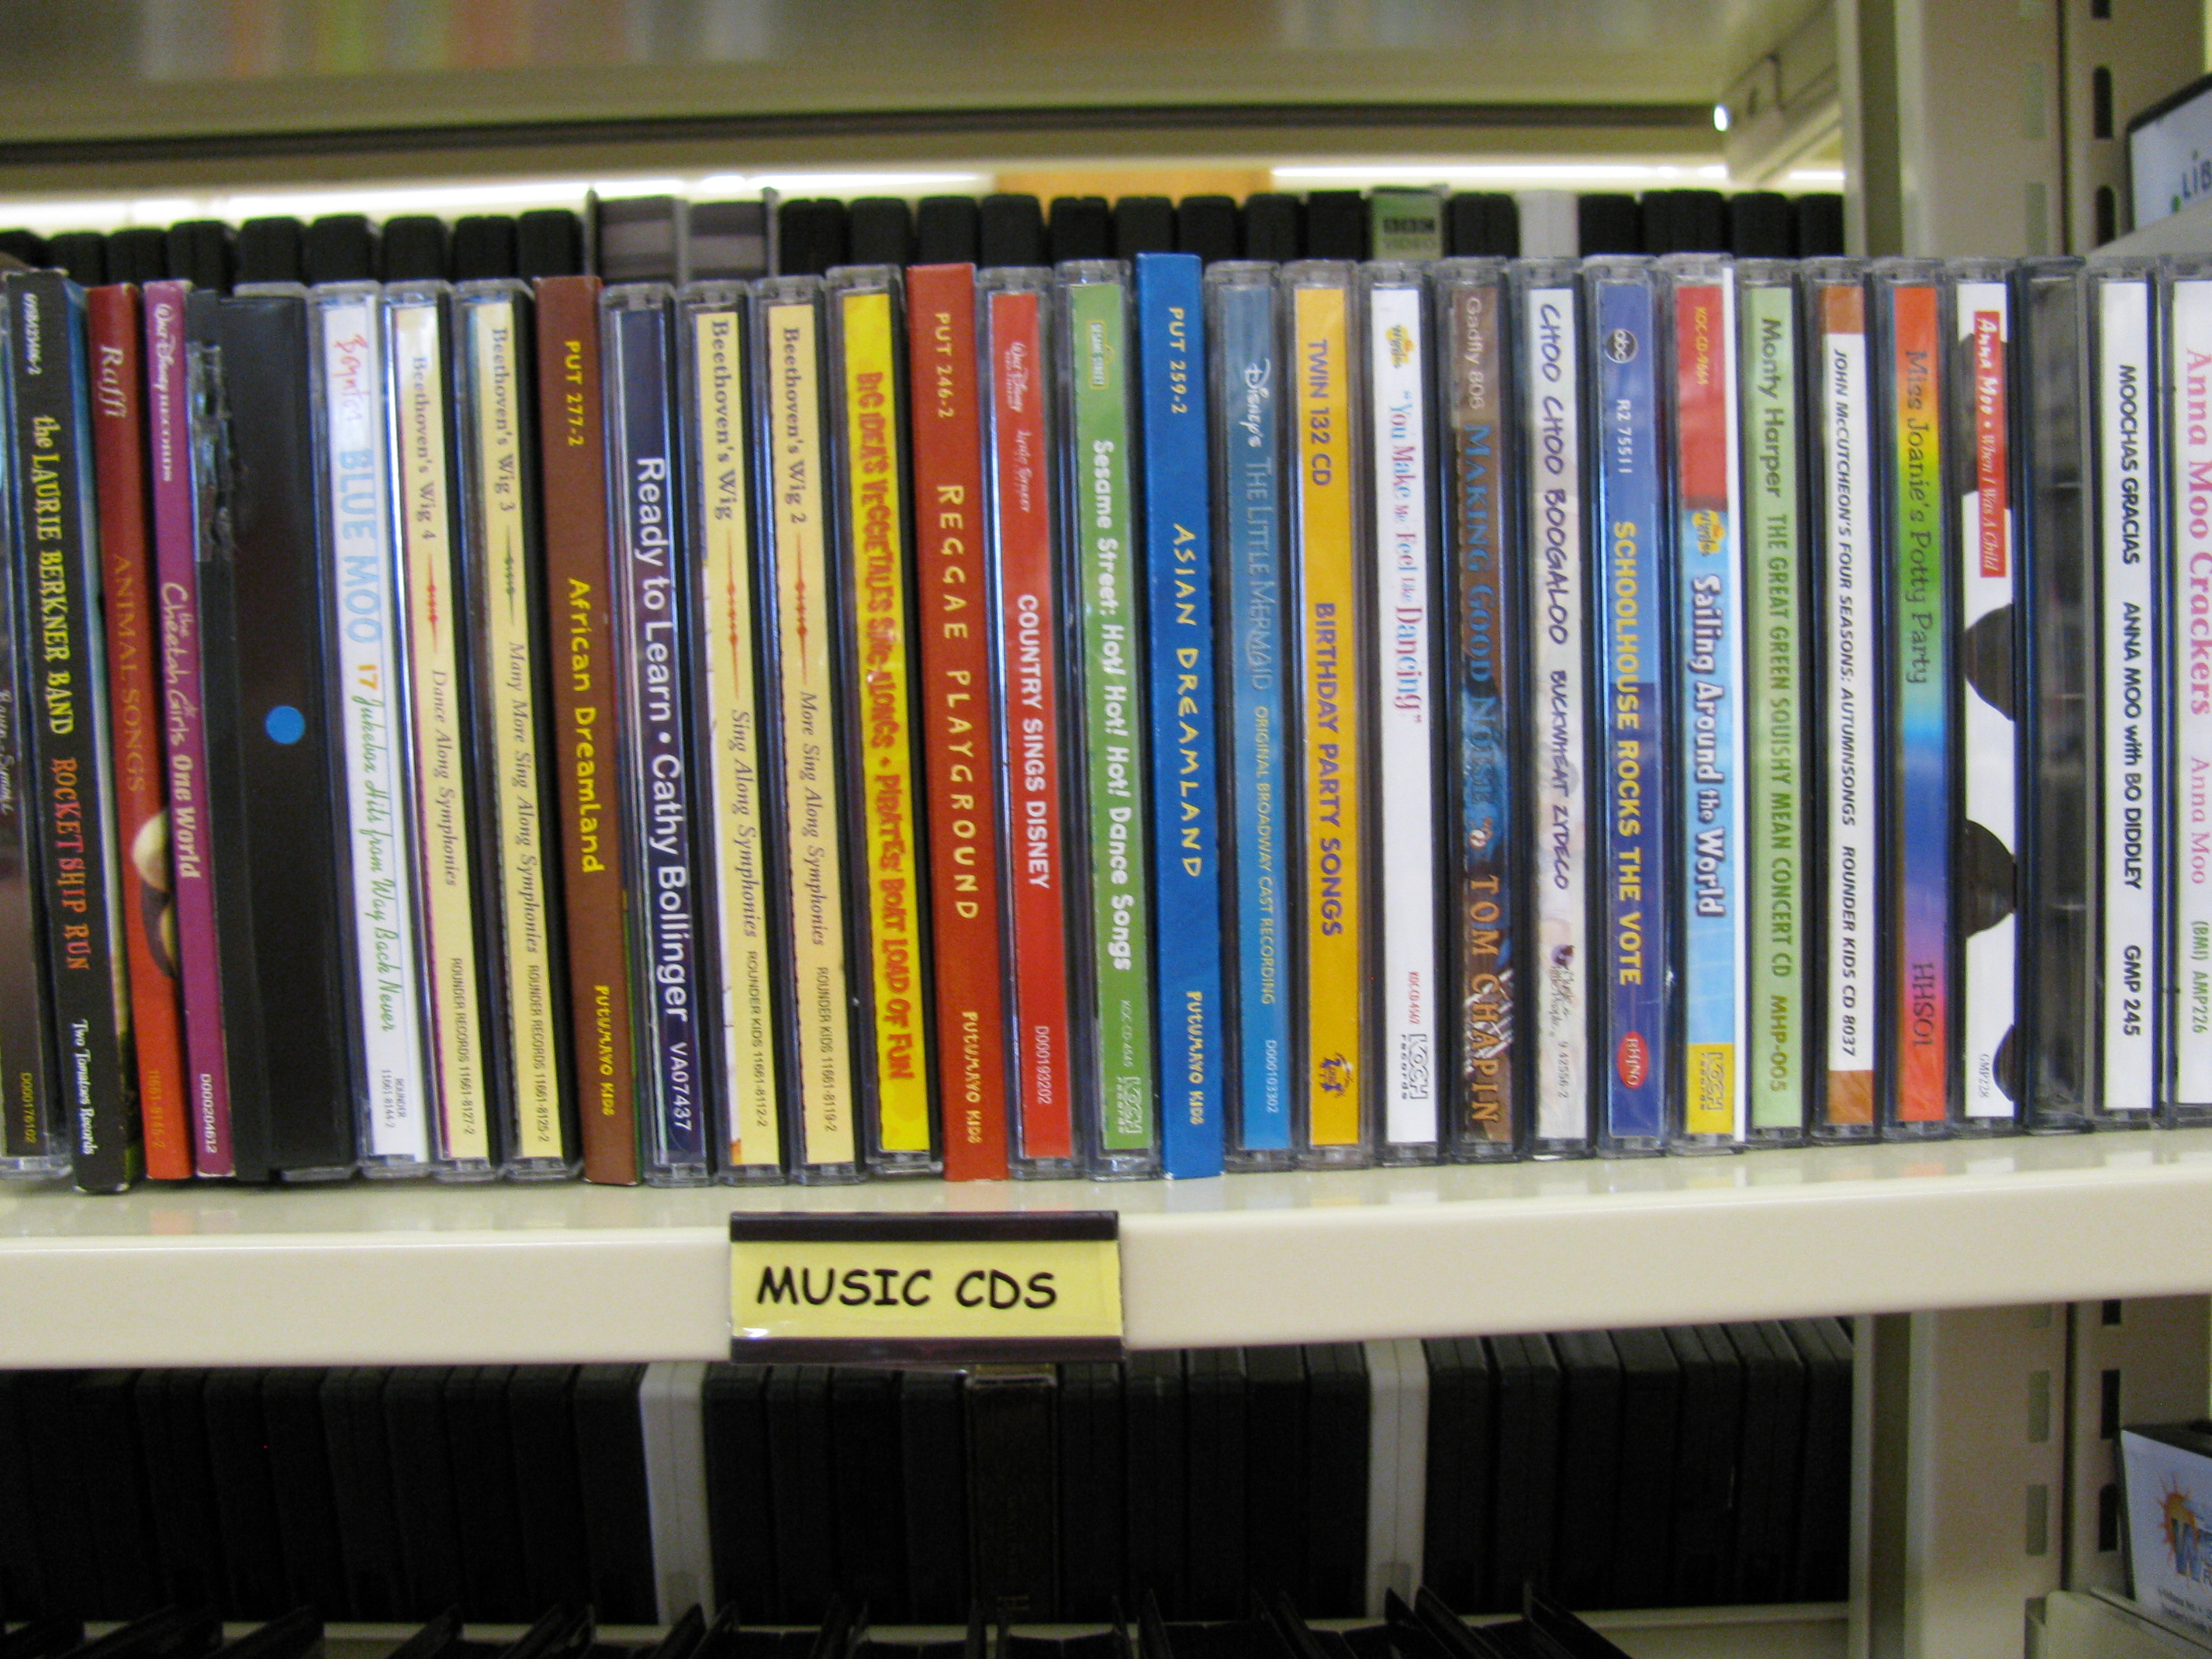 Shelf of music CDs